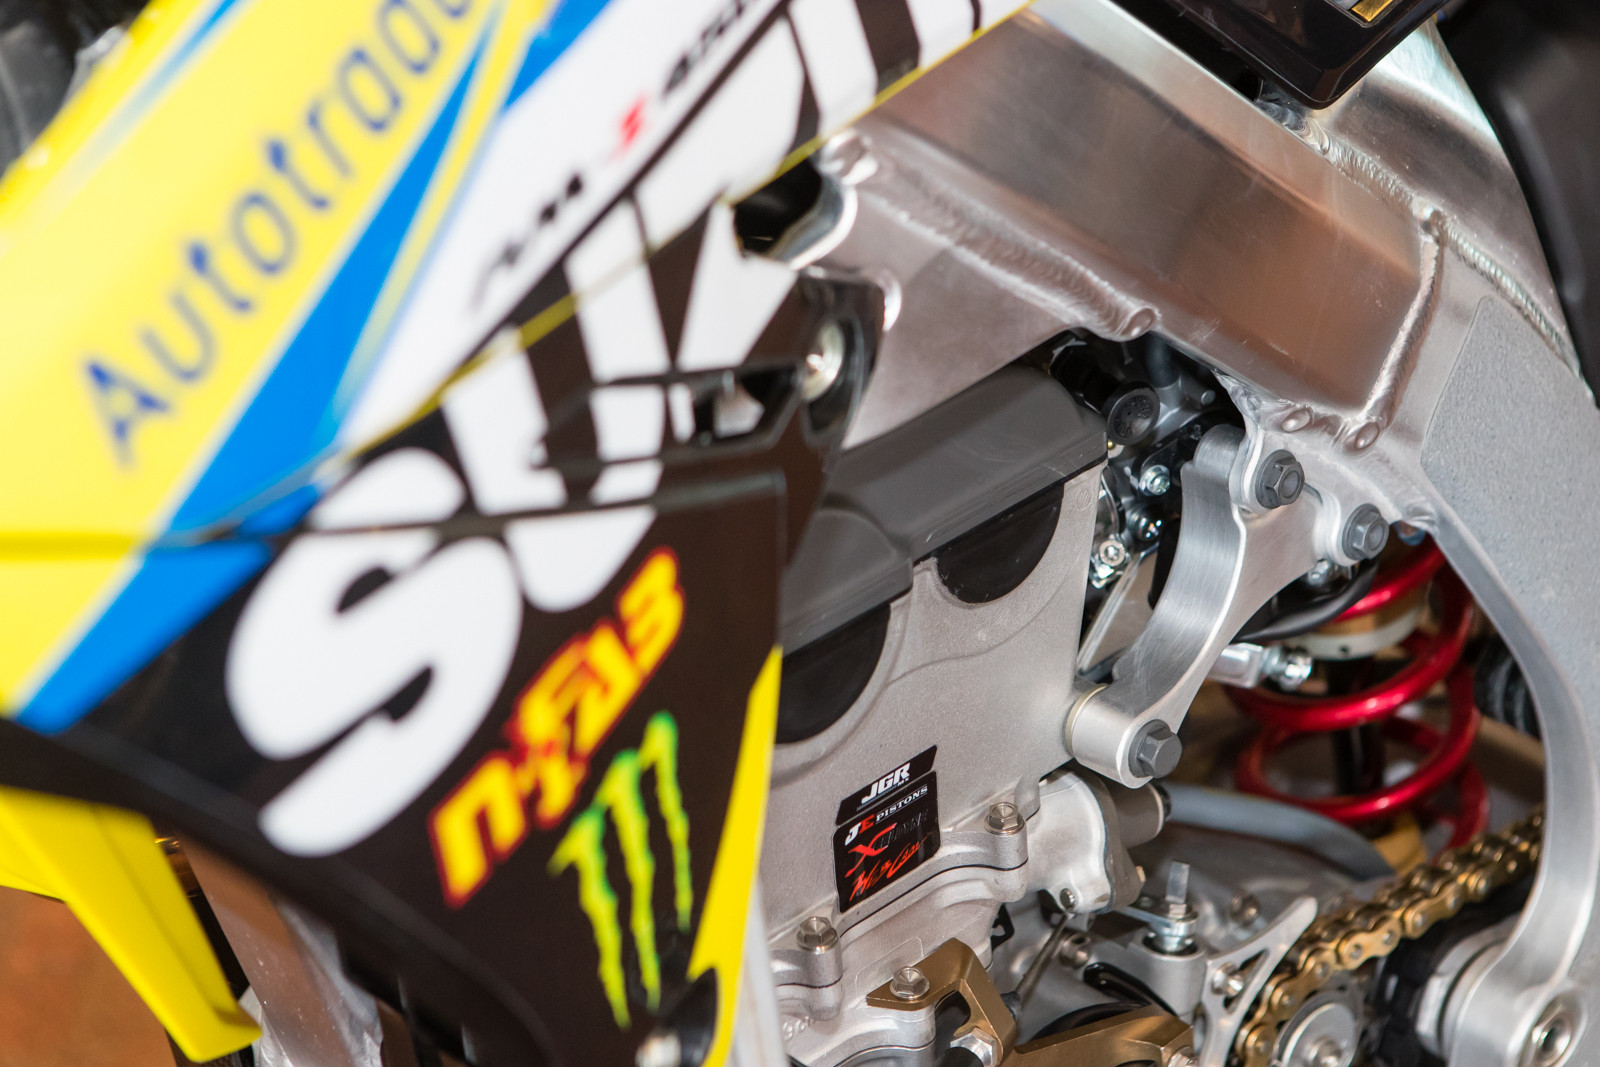 JGR's engine hangers are thicker but thinner in proportions to the stock units.